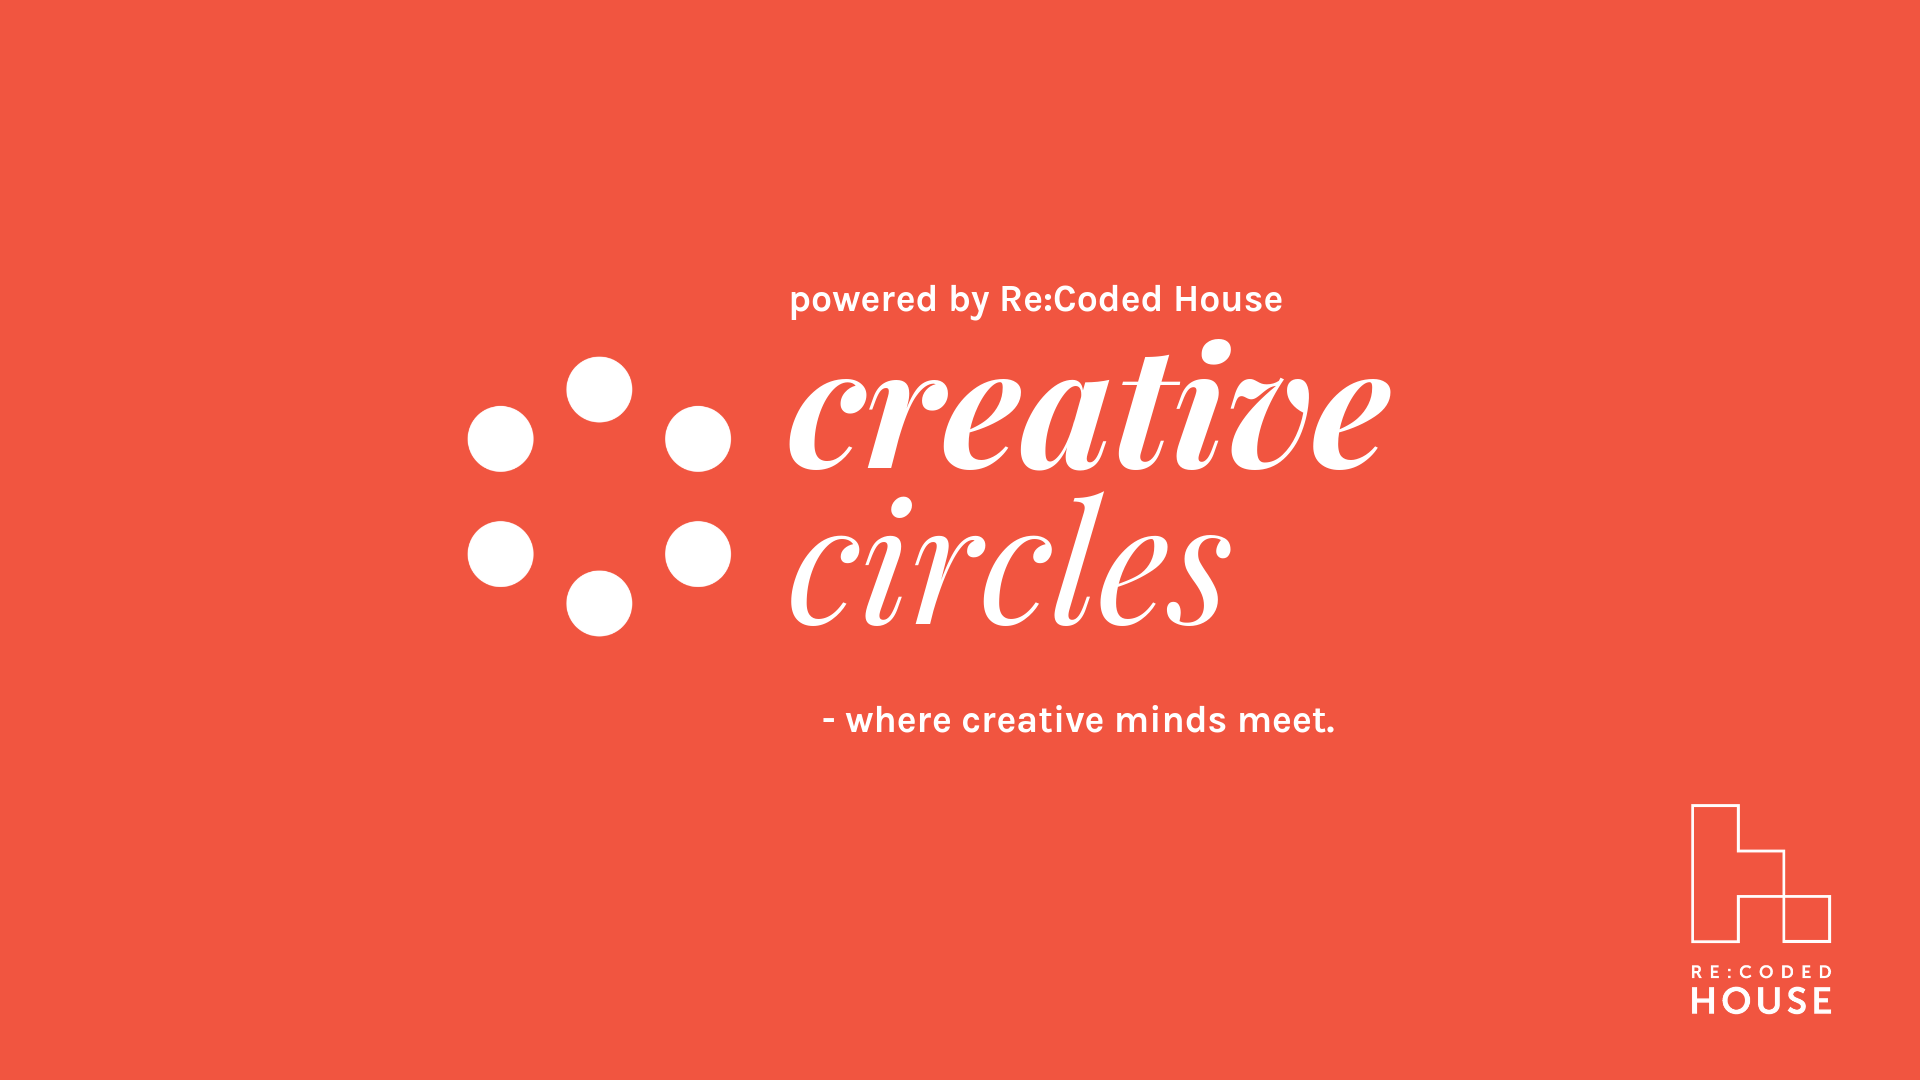 Creative Circles - We're proud to host a monthly event series dedicated to the creative industries. Whether you've been working in the creative field for a decade, or are newly interested in the arts, Creative Circles invites creatives to our space to share their work and learn from one another. Events are held monthly, and to see if an event is upcoming, visit our Facebook.